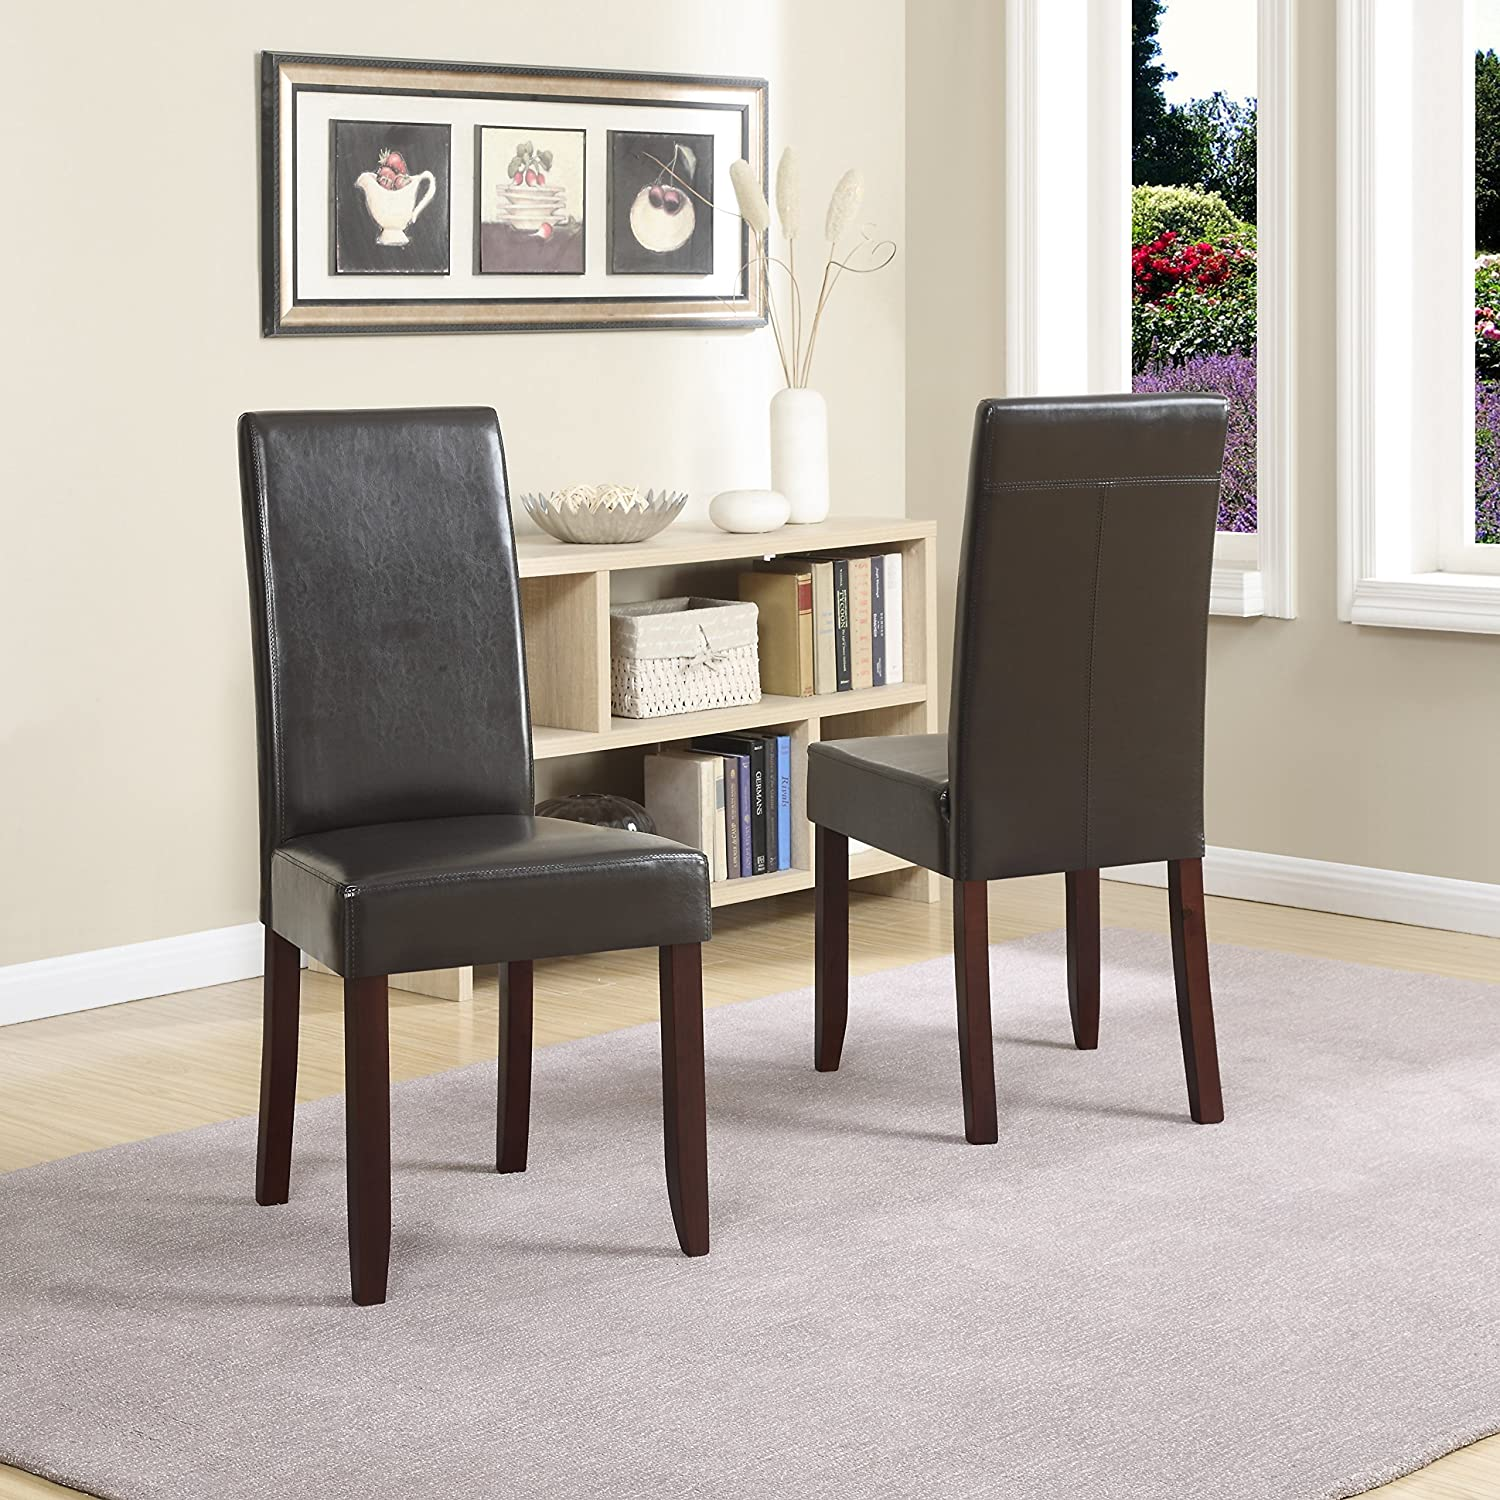 Amazon Simpli Home Acadian Pu Leather Parson Dining Chairs Dark Brown Set Of 2 Kitchen